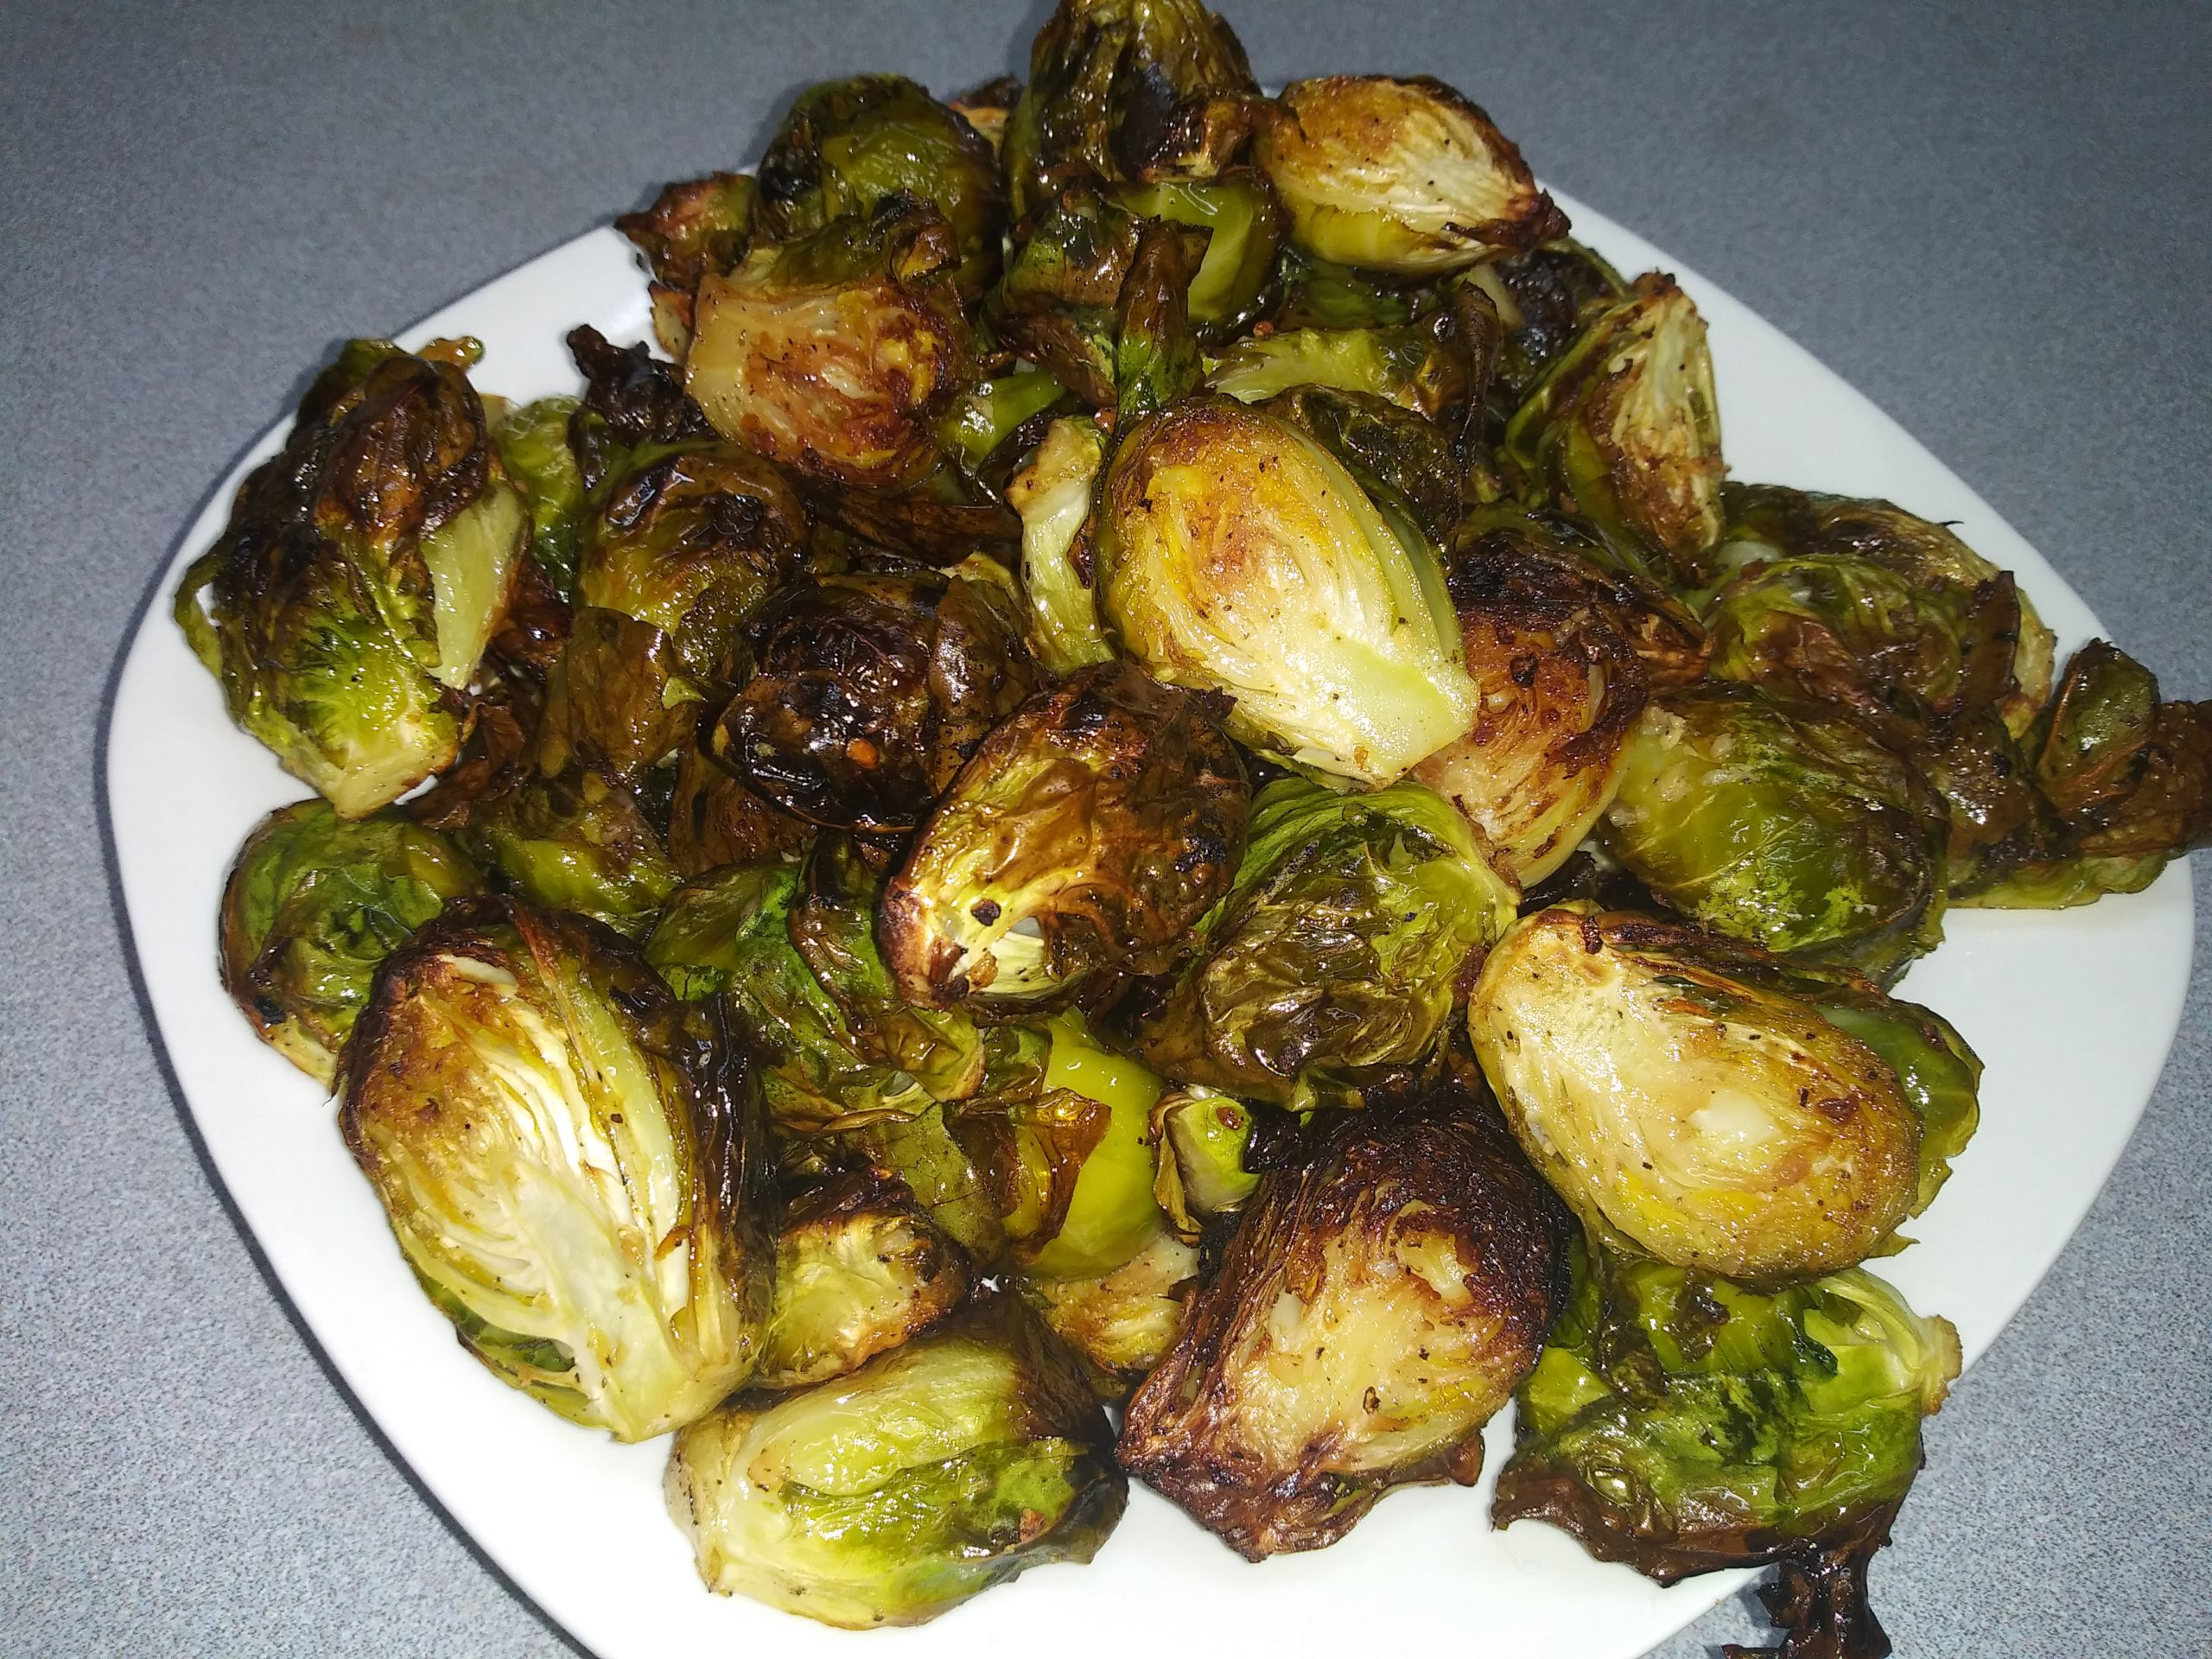 Oven Roasted Brussel Sprouts Recipe – Simple and Delicious